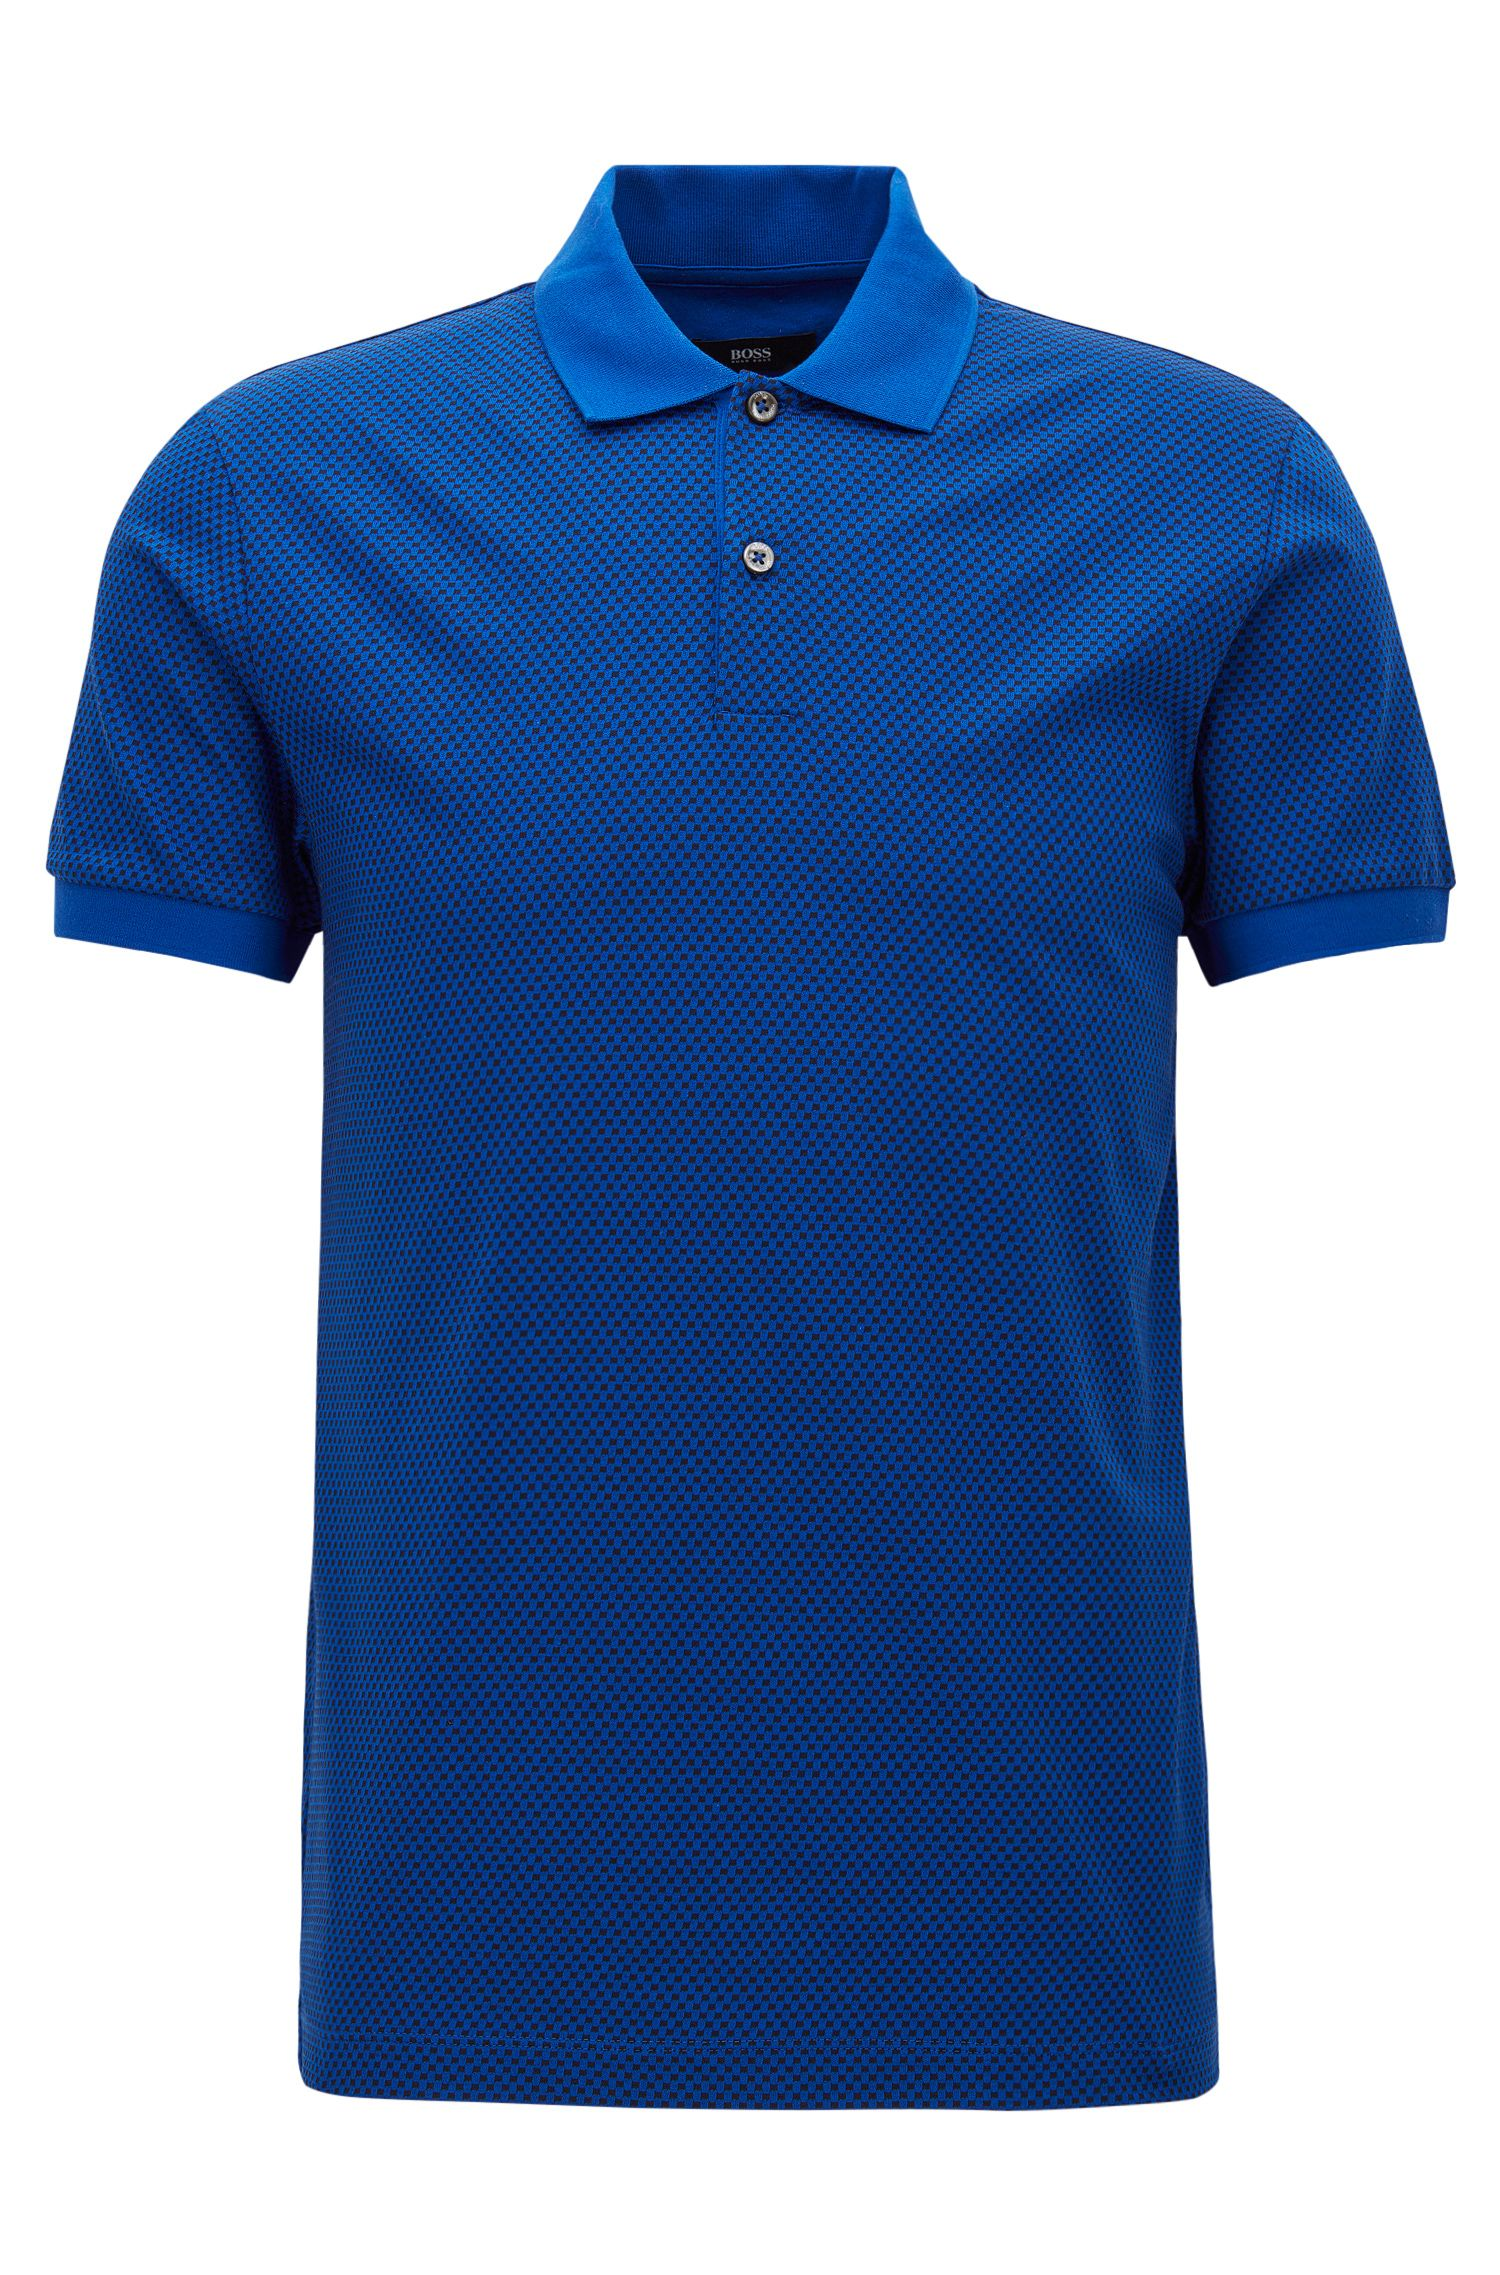 Slim Fit, Micro-Print Cotton Polo Shirt | Phillipson